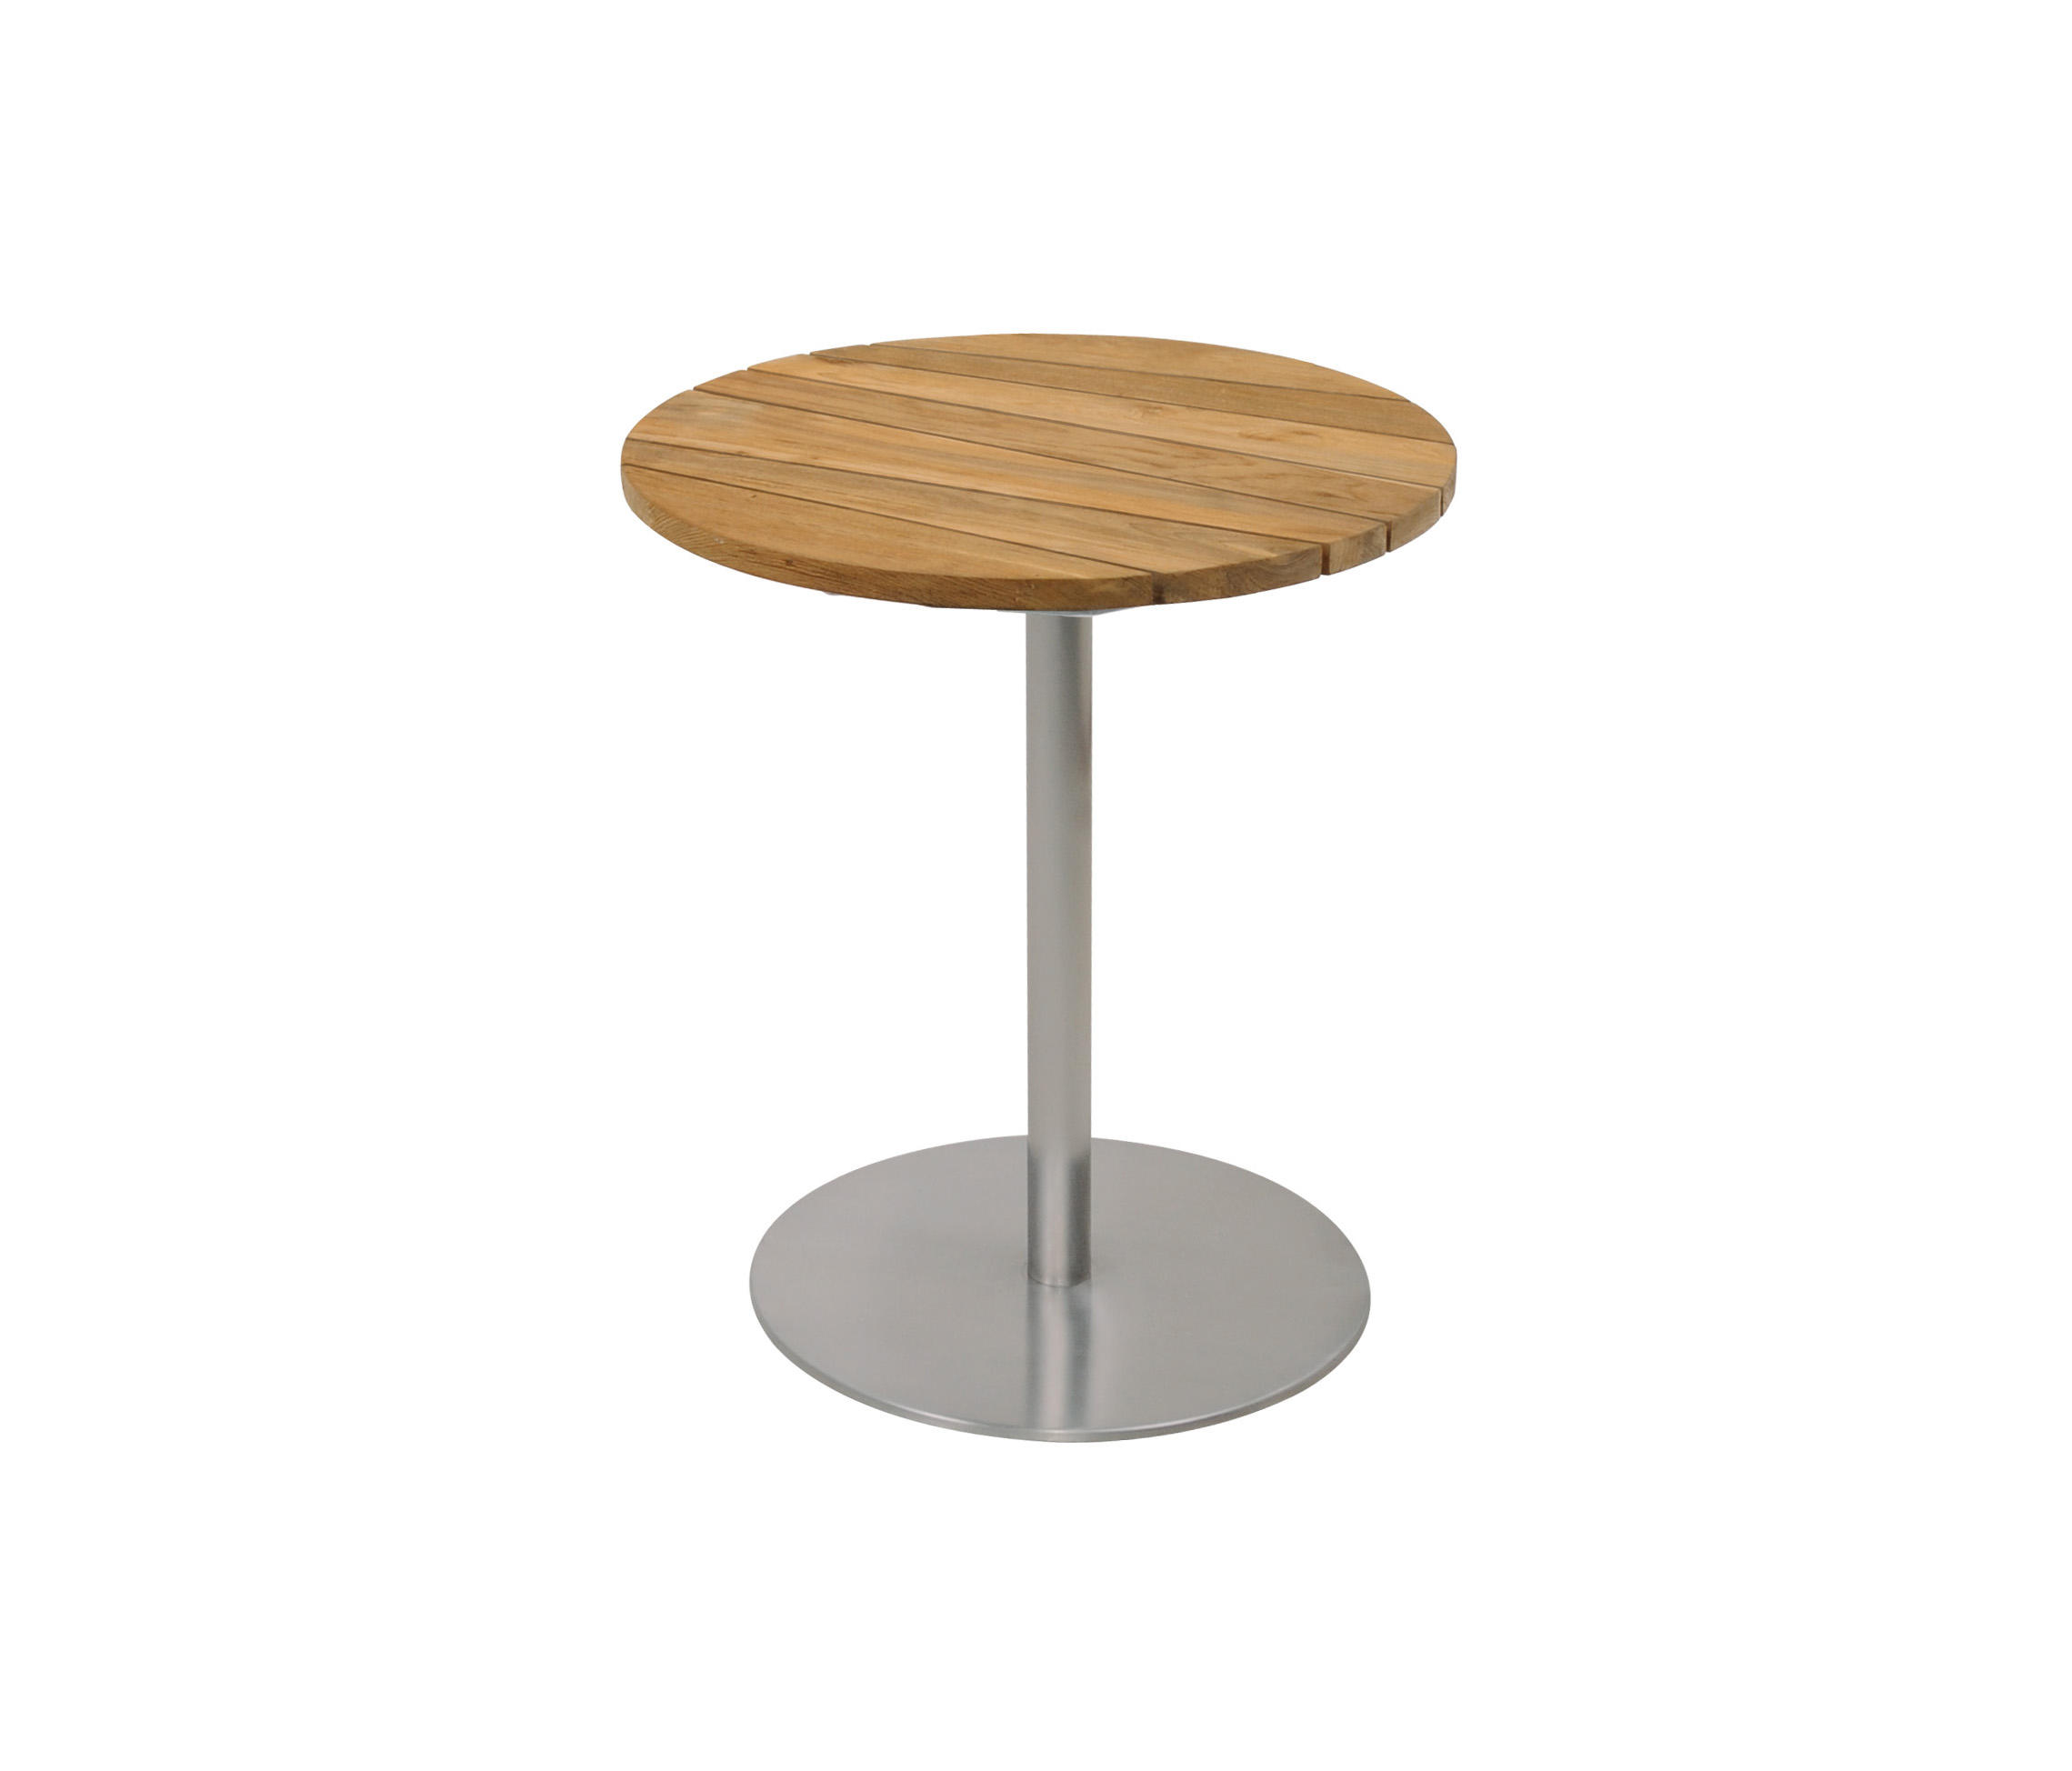 Gemmy dining table 60 cm base d bistro tables from for Table hauteur 60 cm